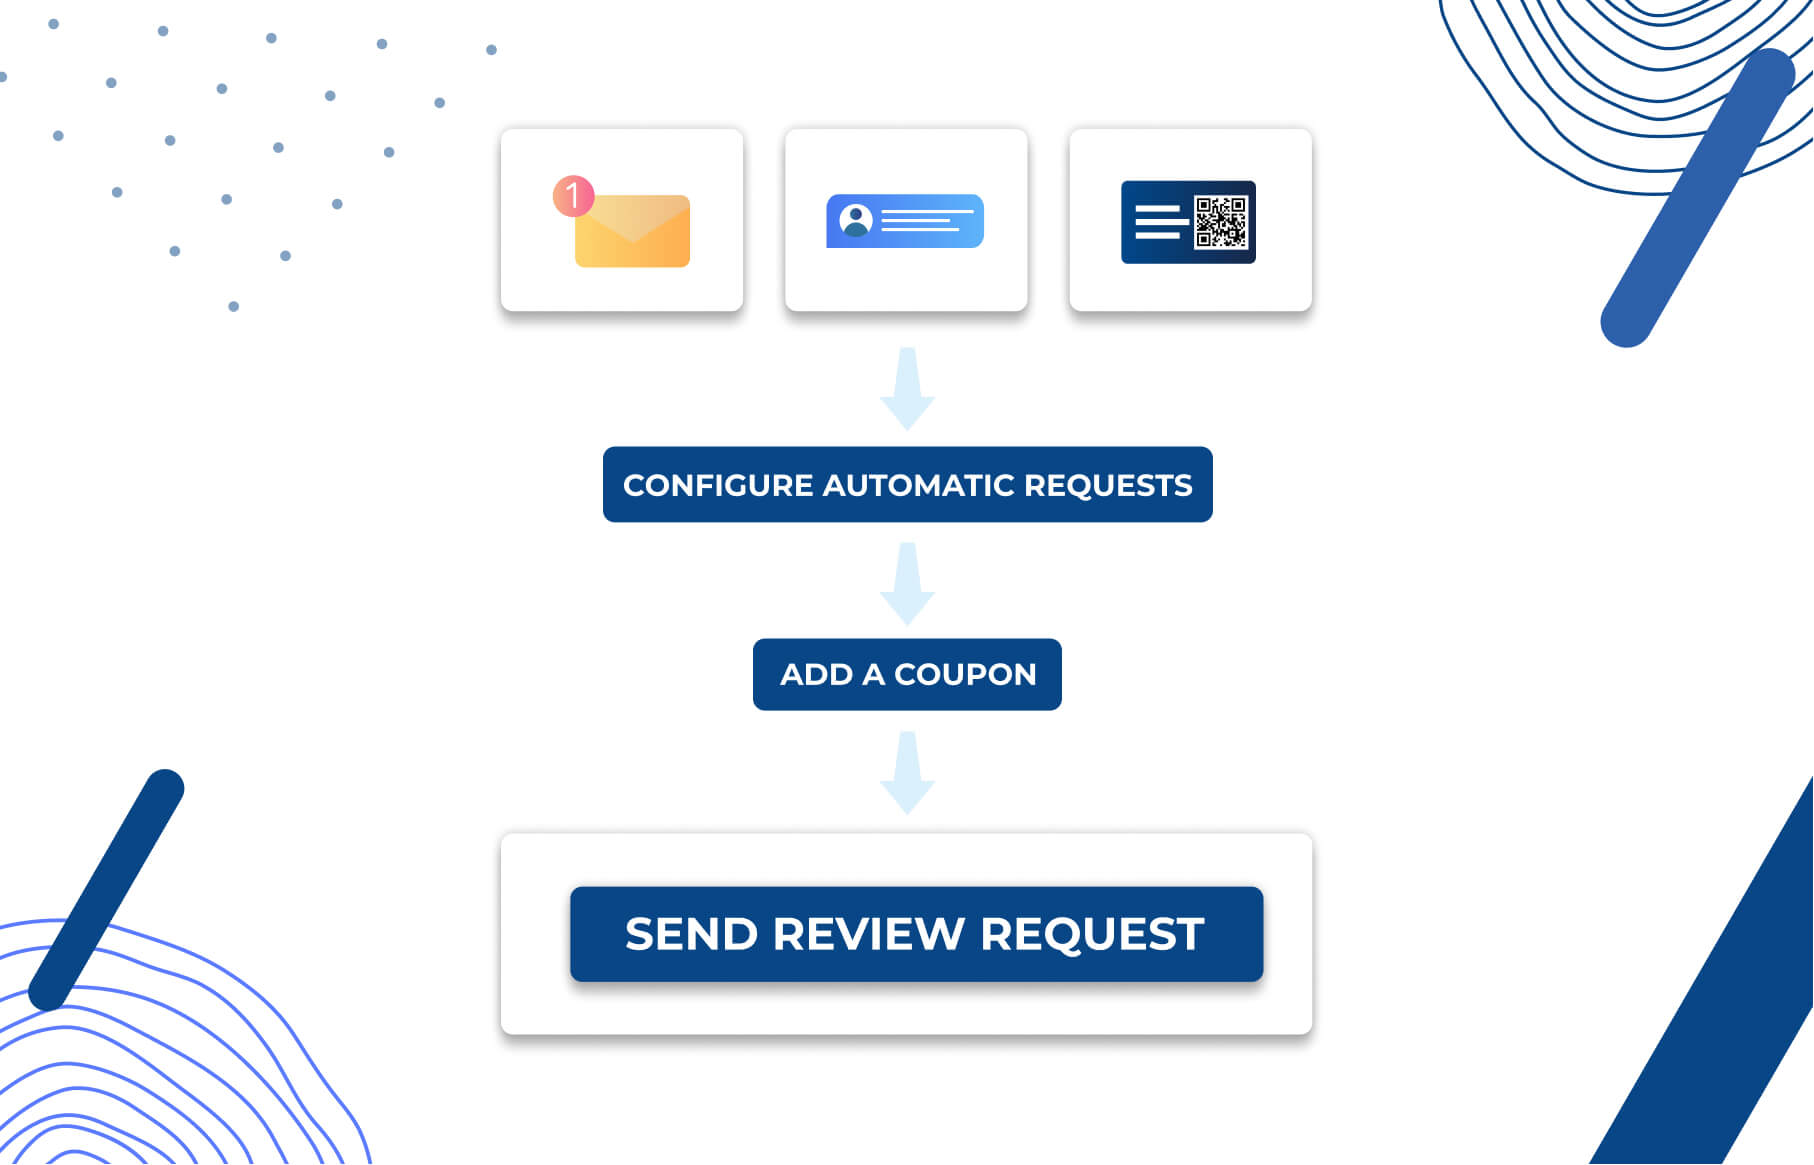 Configure review requests flows for your Shopify store, add a coupon and get verified reviews